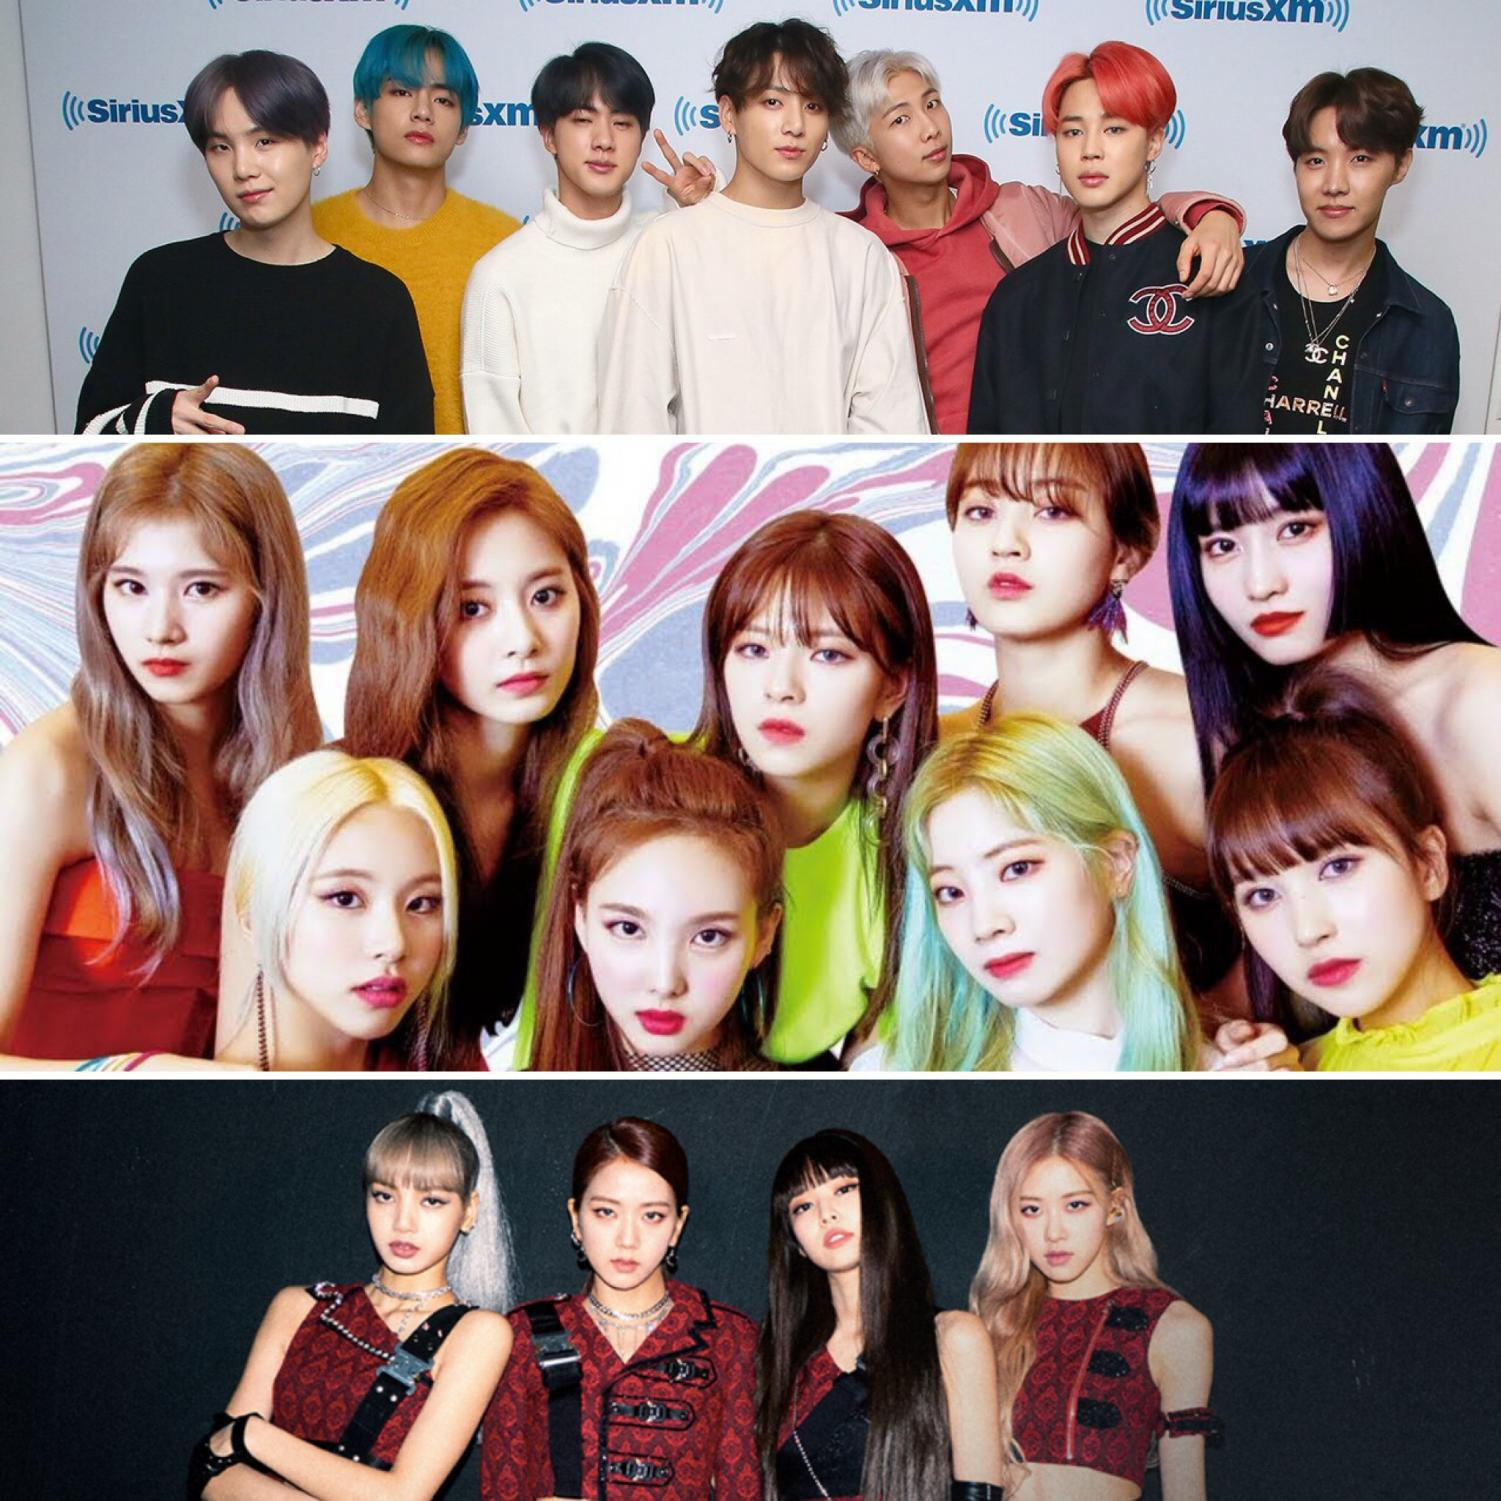 K-pop groups BTS, TWICE, and BLACKPINK are all set to make